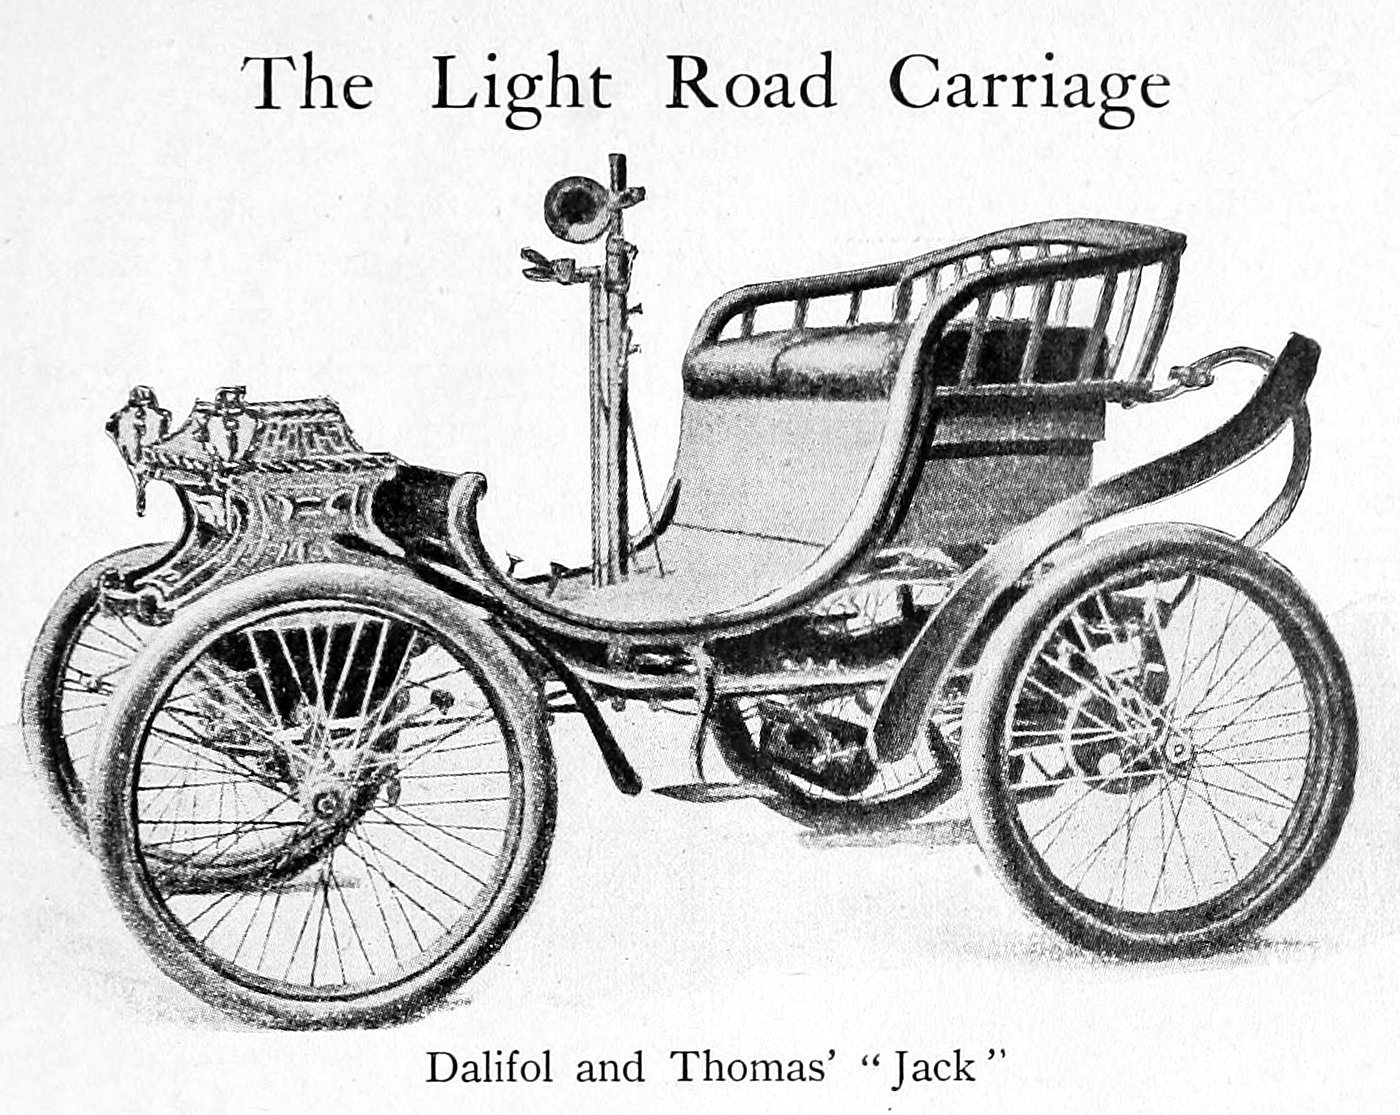 Dalifol and Thomas' Jack light road carriage (1900s)